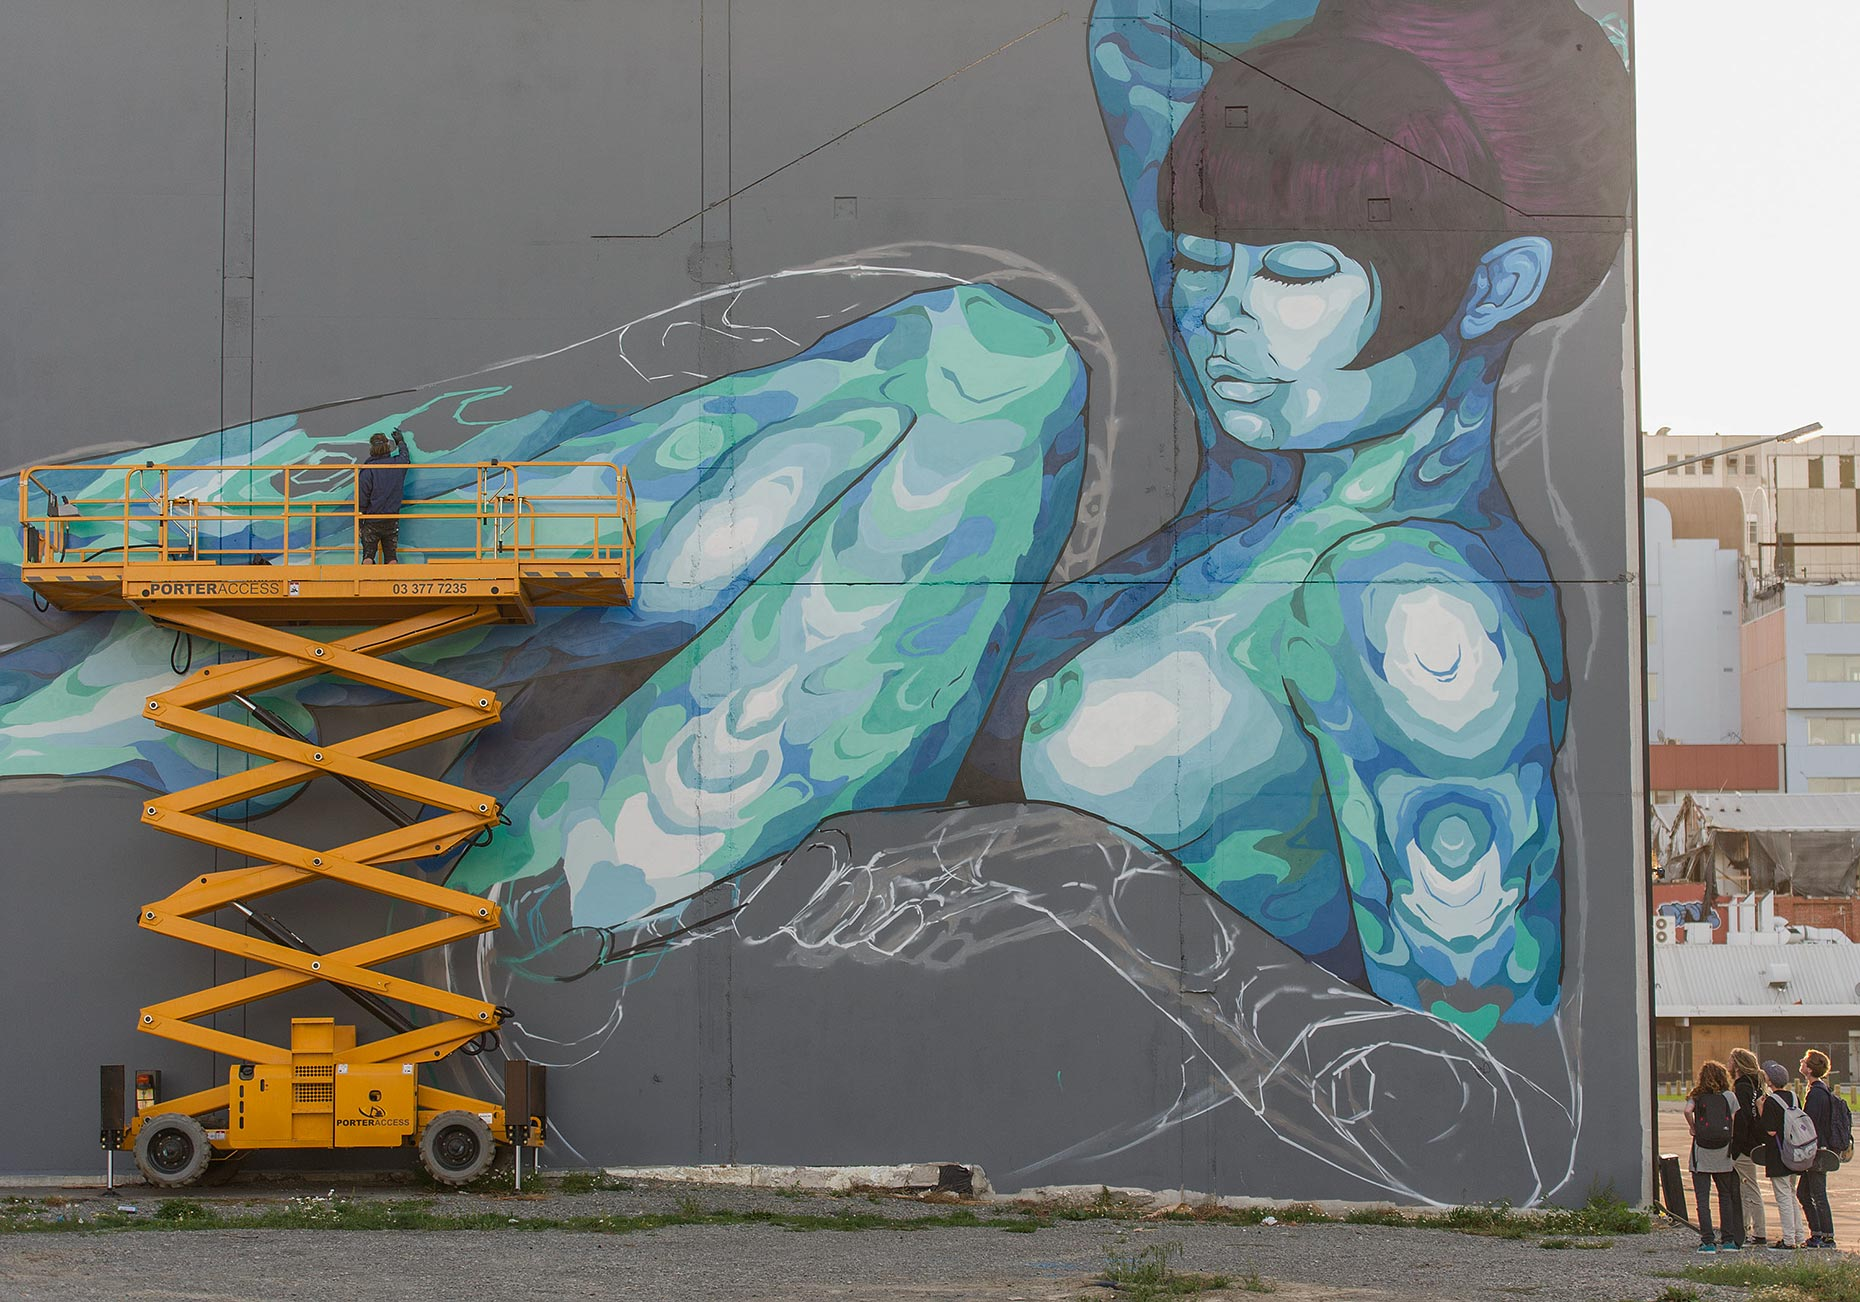 LAT_PhotoReporters_seb-humphreys-mural